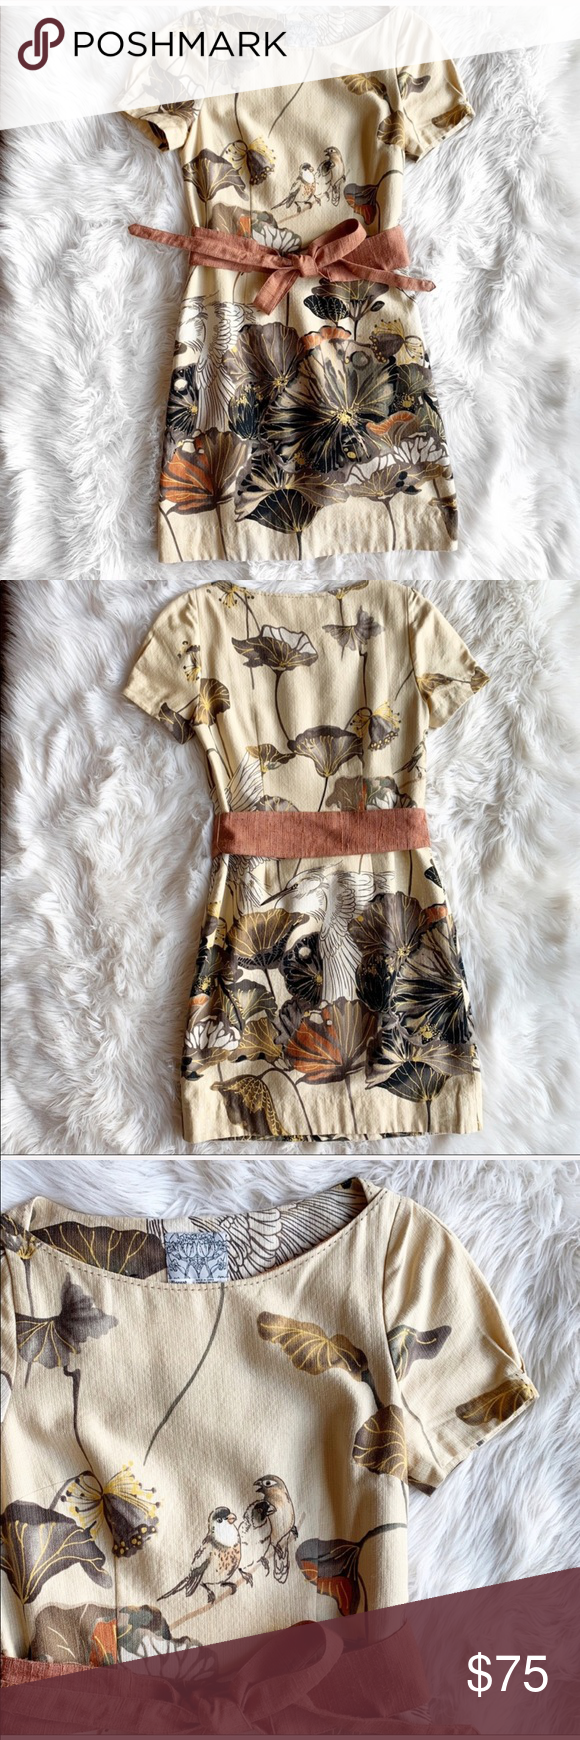 a42dd9208f753 Anthropologie Floreat Snowy Egret Shift Dress Anthropologie Floreat Snowy  Egret Shift Dress in excellent used condition